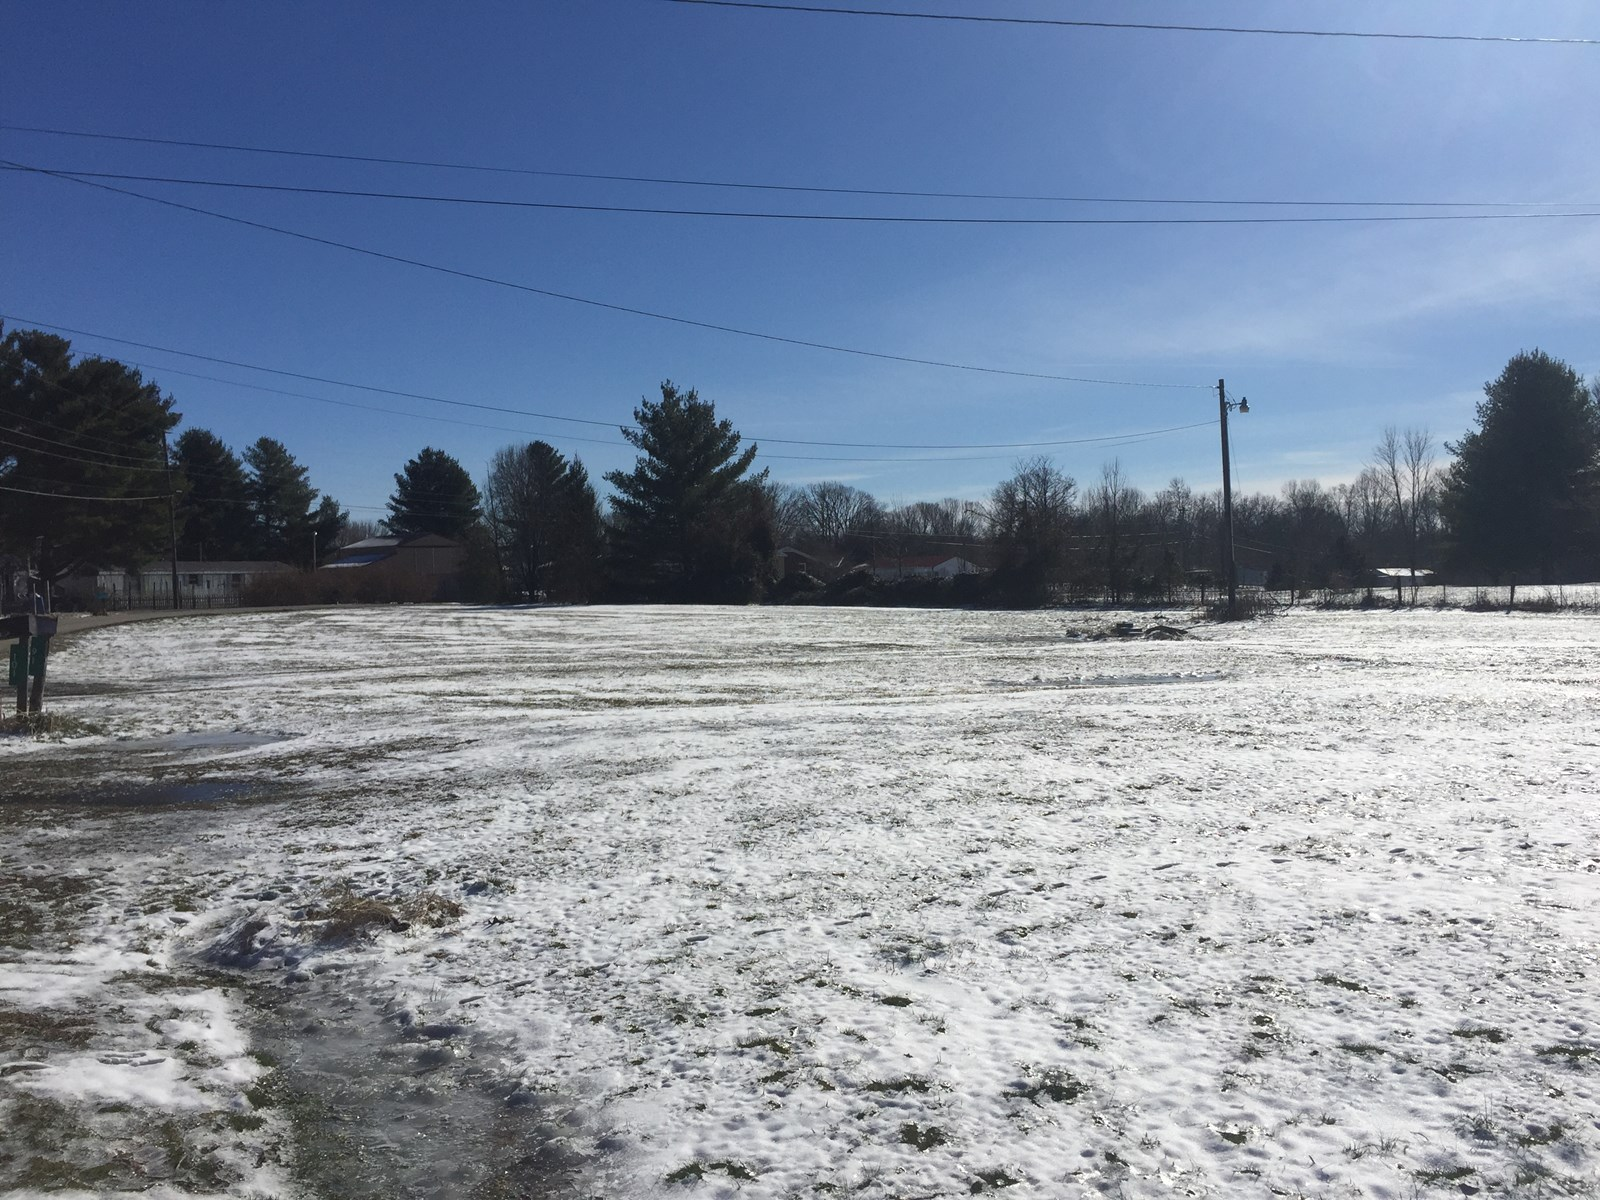 LOT WITH UTILITIES IN PLACE - LIBERTY KENTUCKY